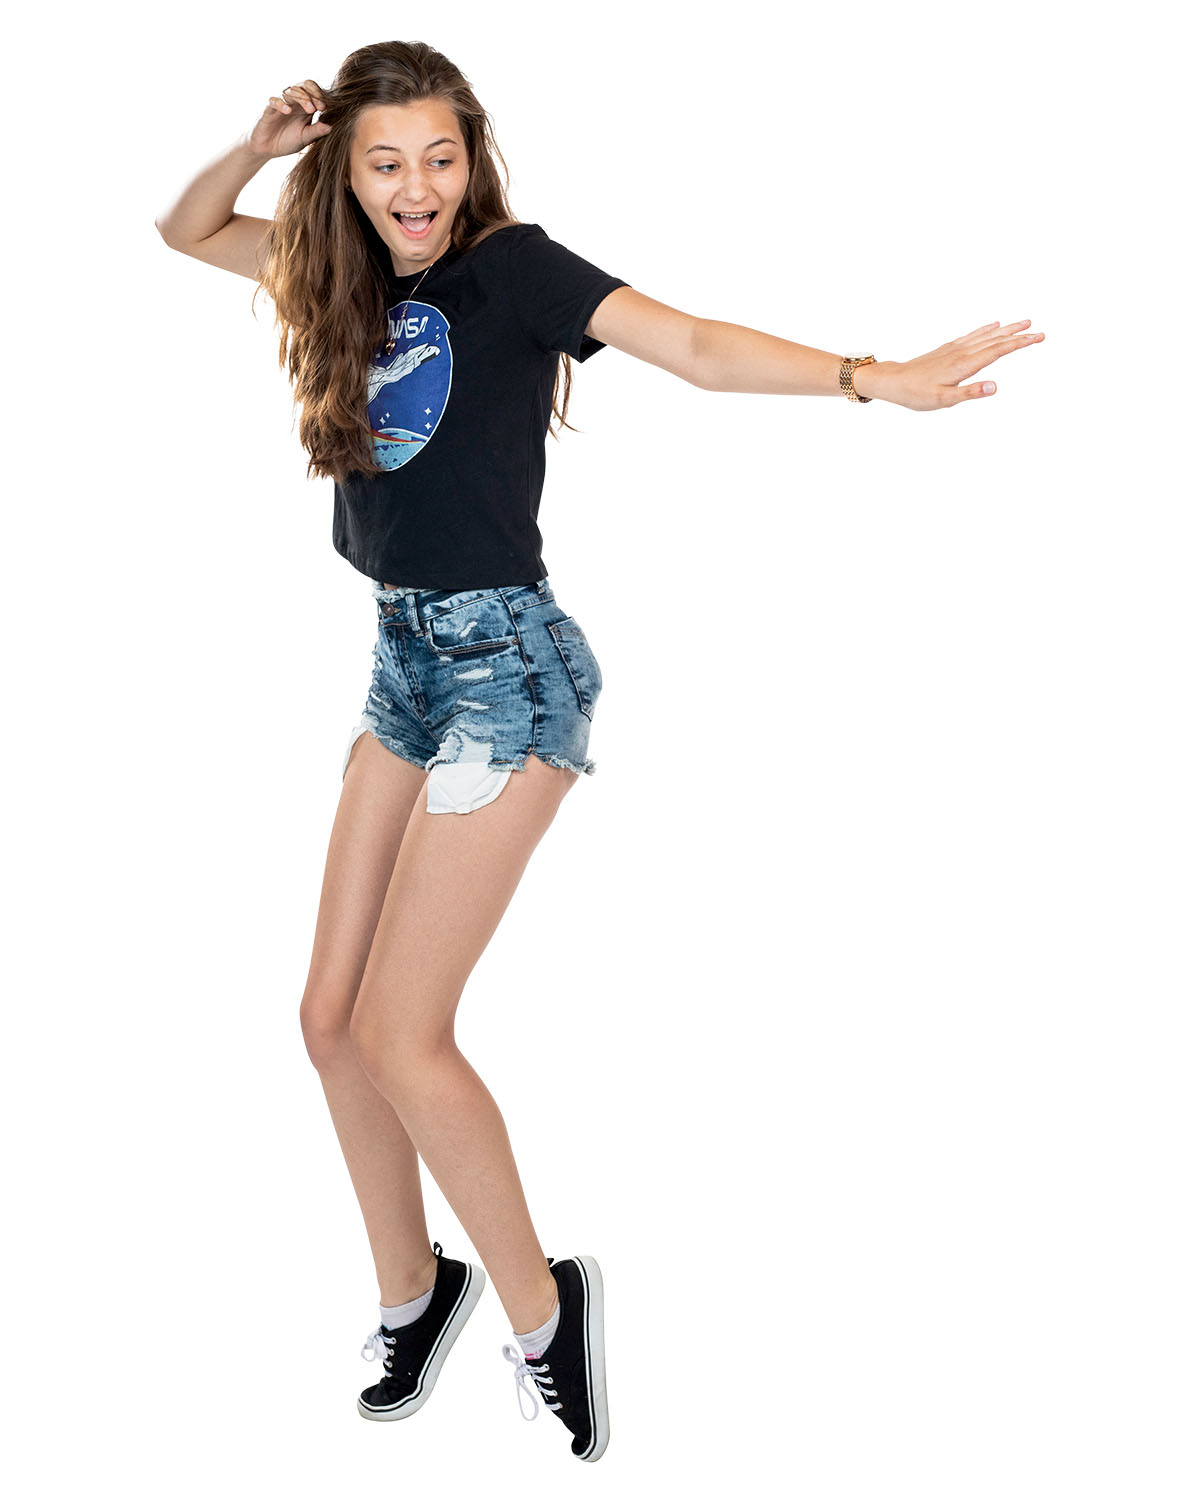 A woman in a black NASA T-shirt and ripped denim shorts stands on her tip-toes as she reaches an arm out and smiles.